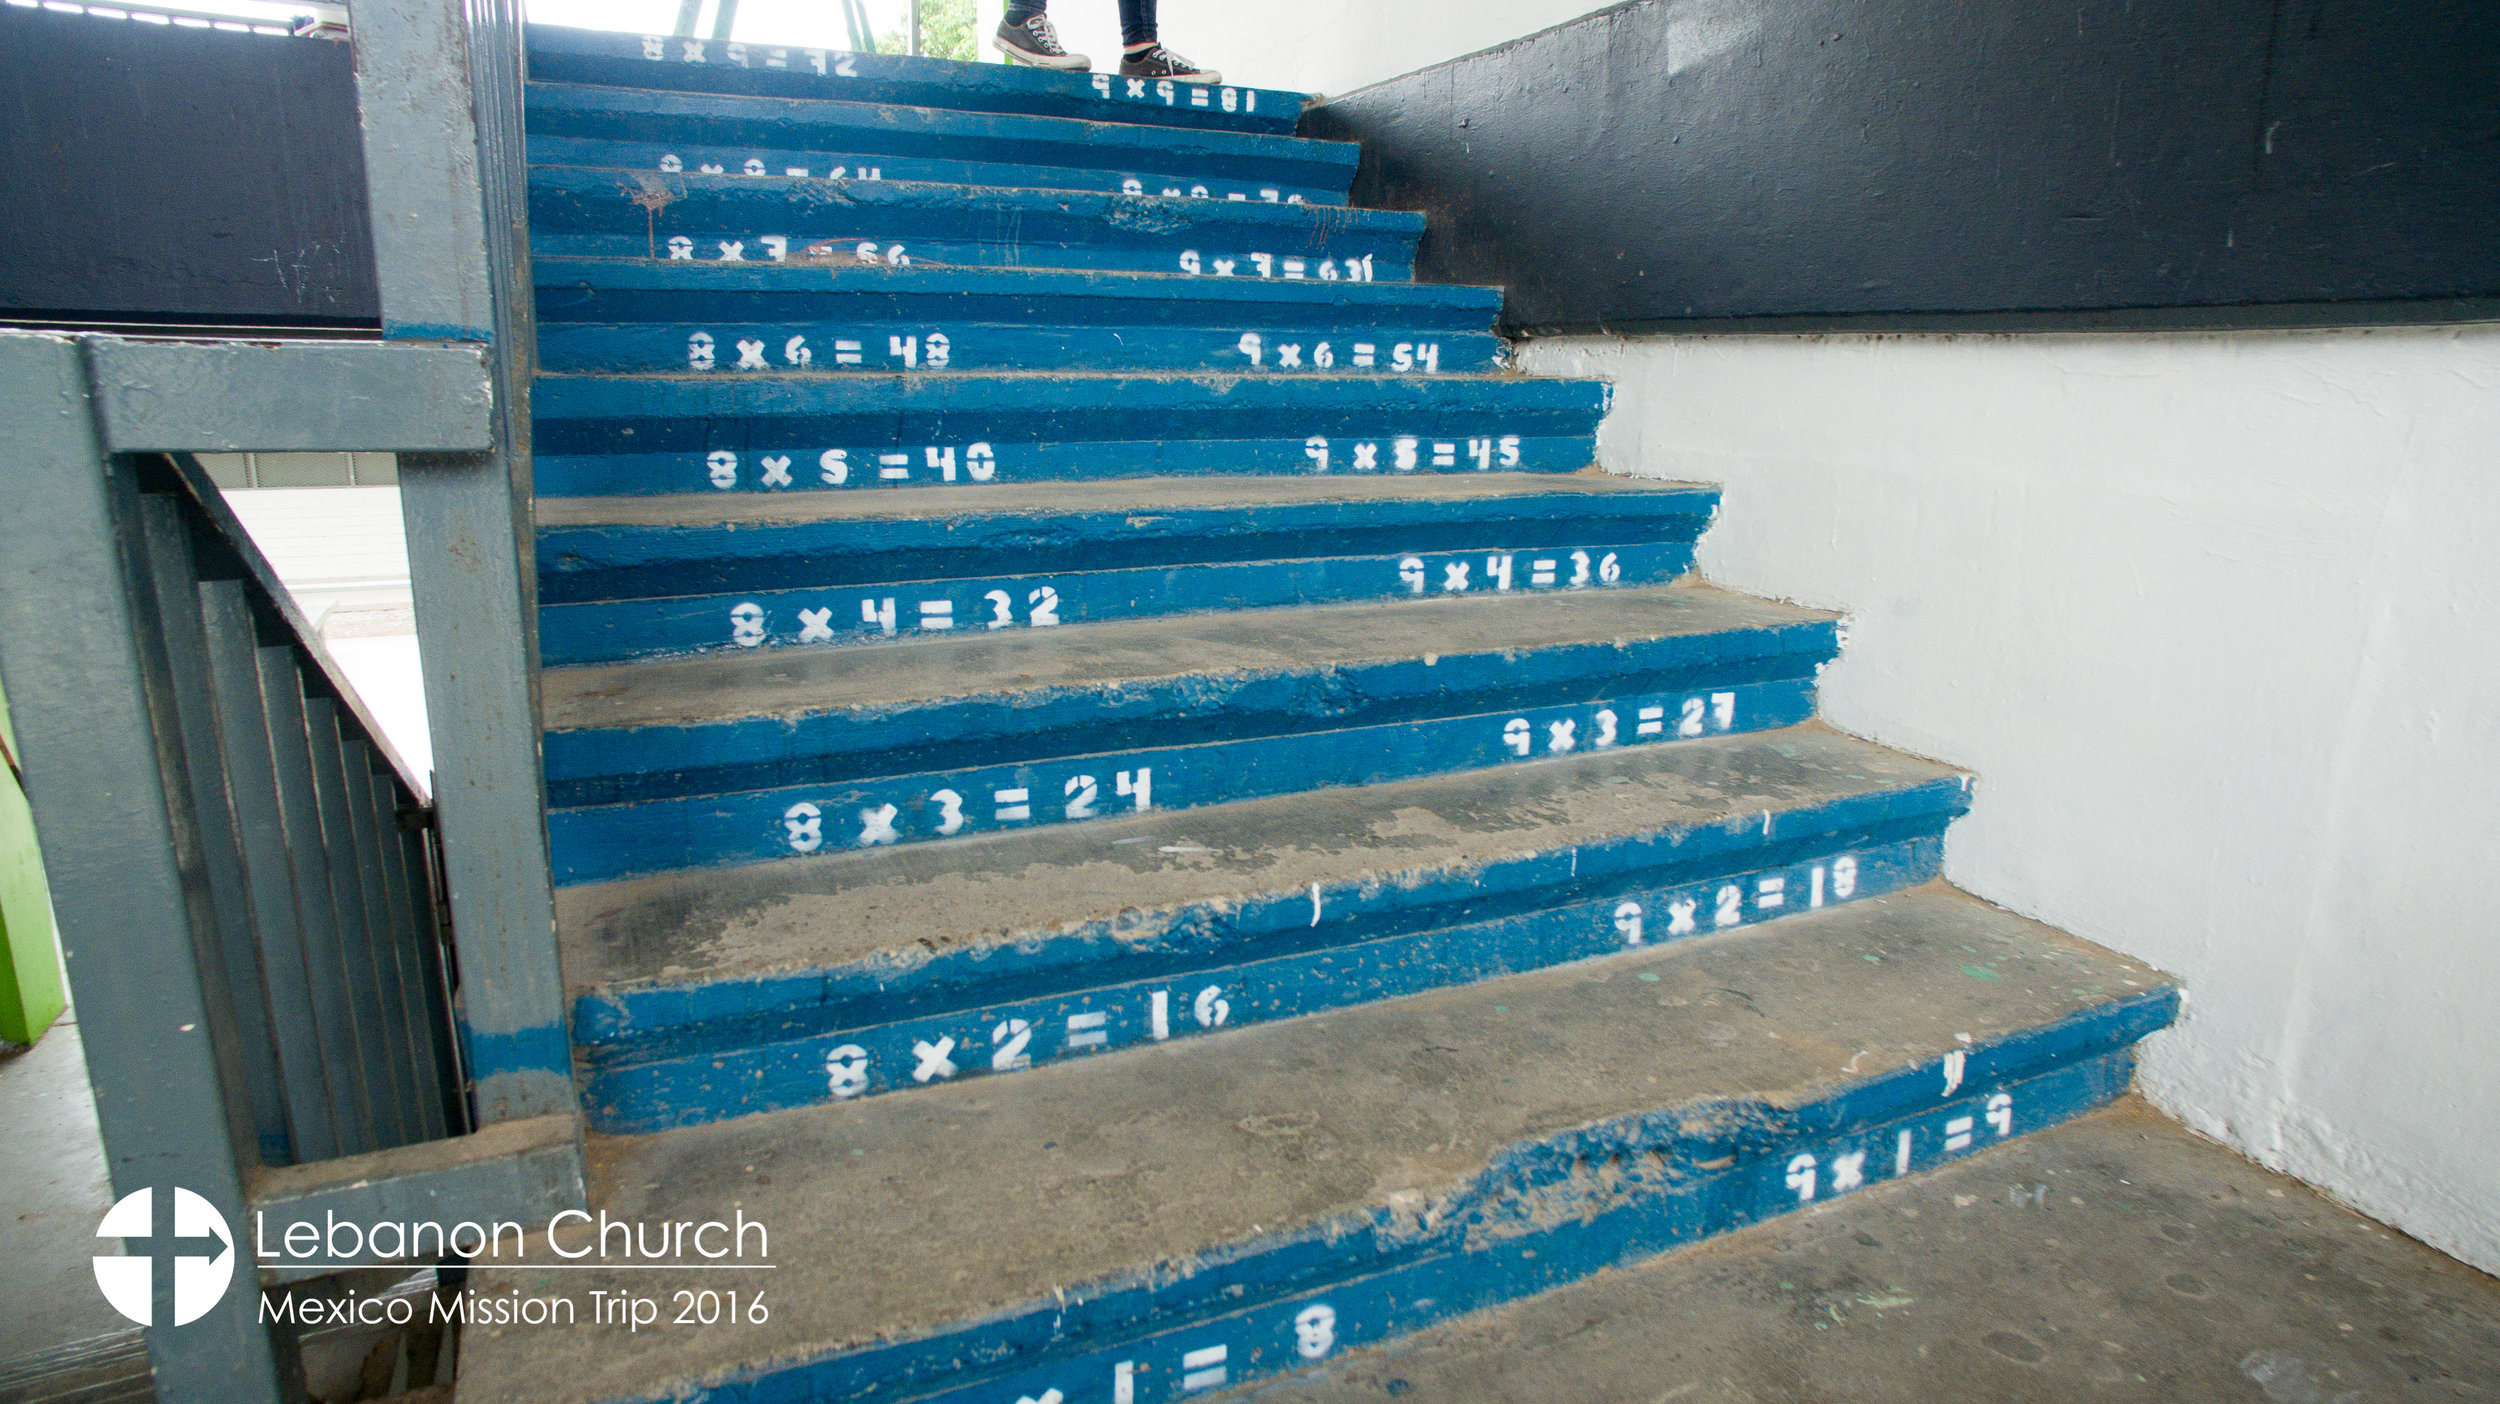 Times tables on the steps at the school